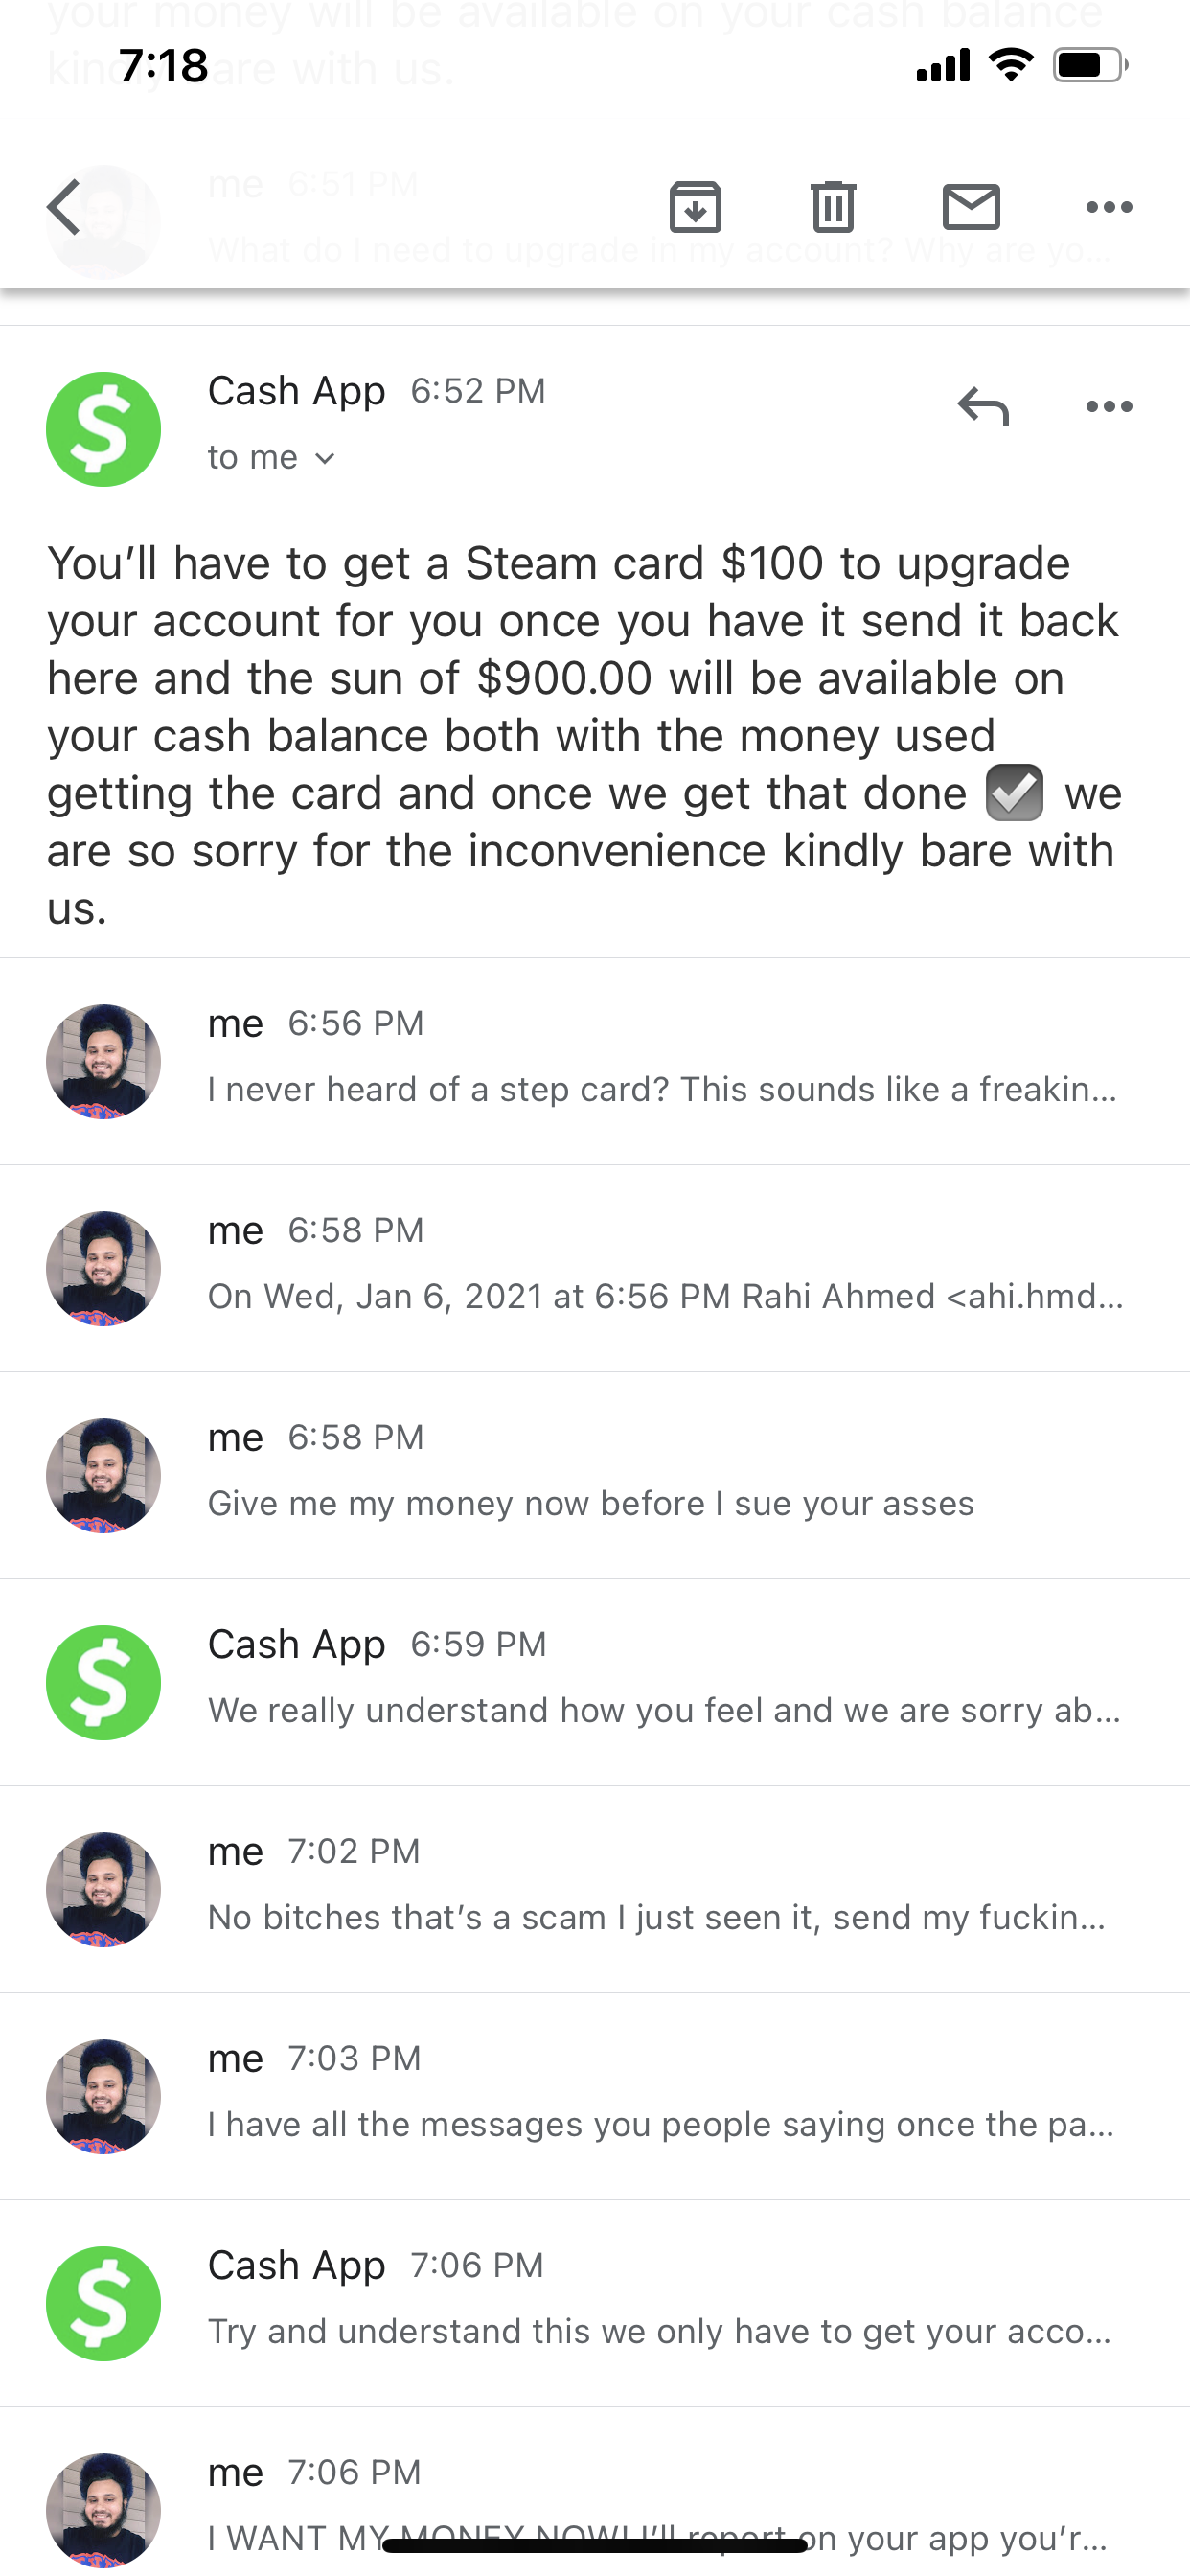 Cash app trying to scam me